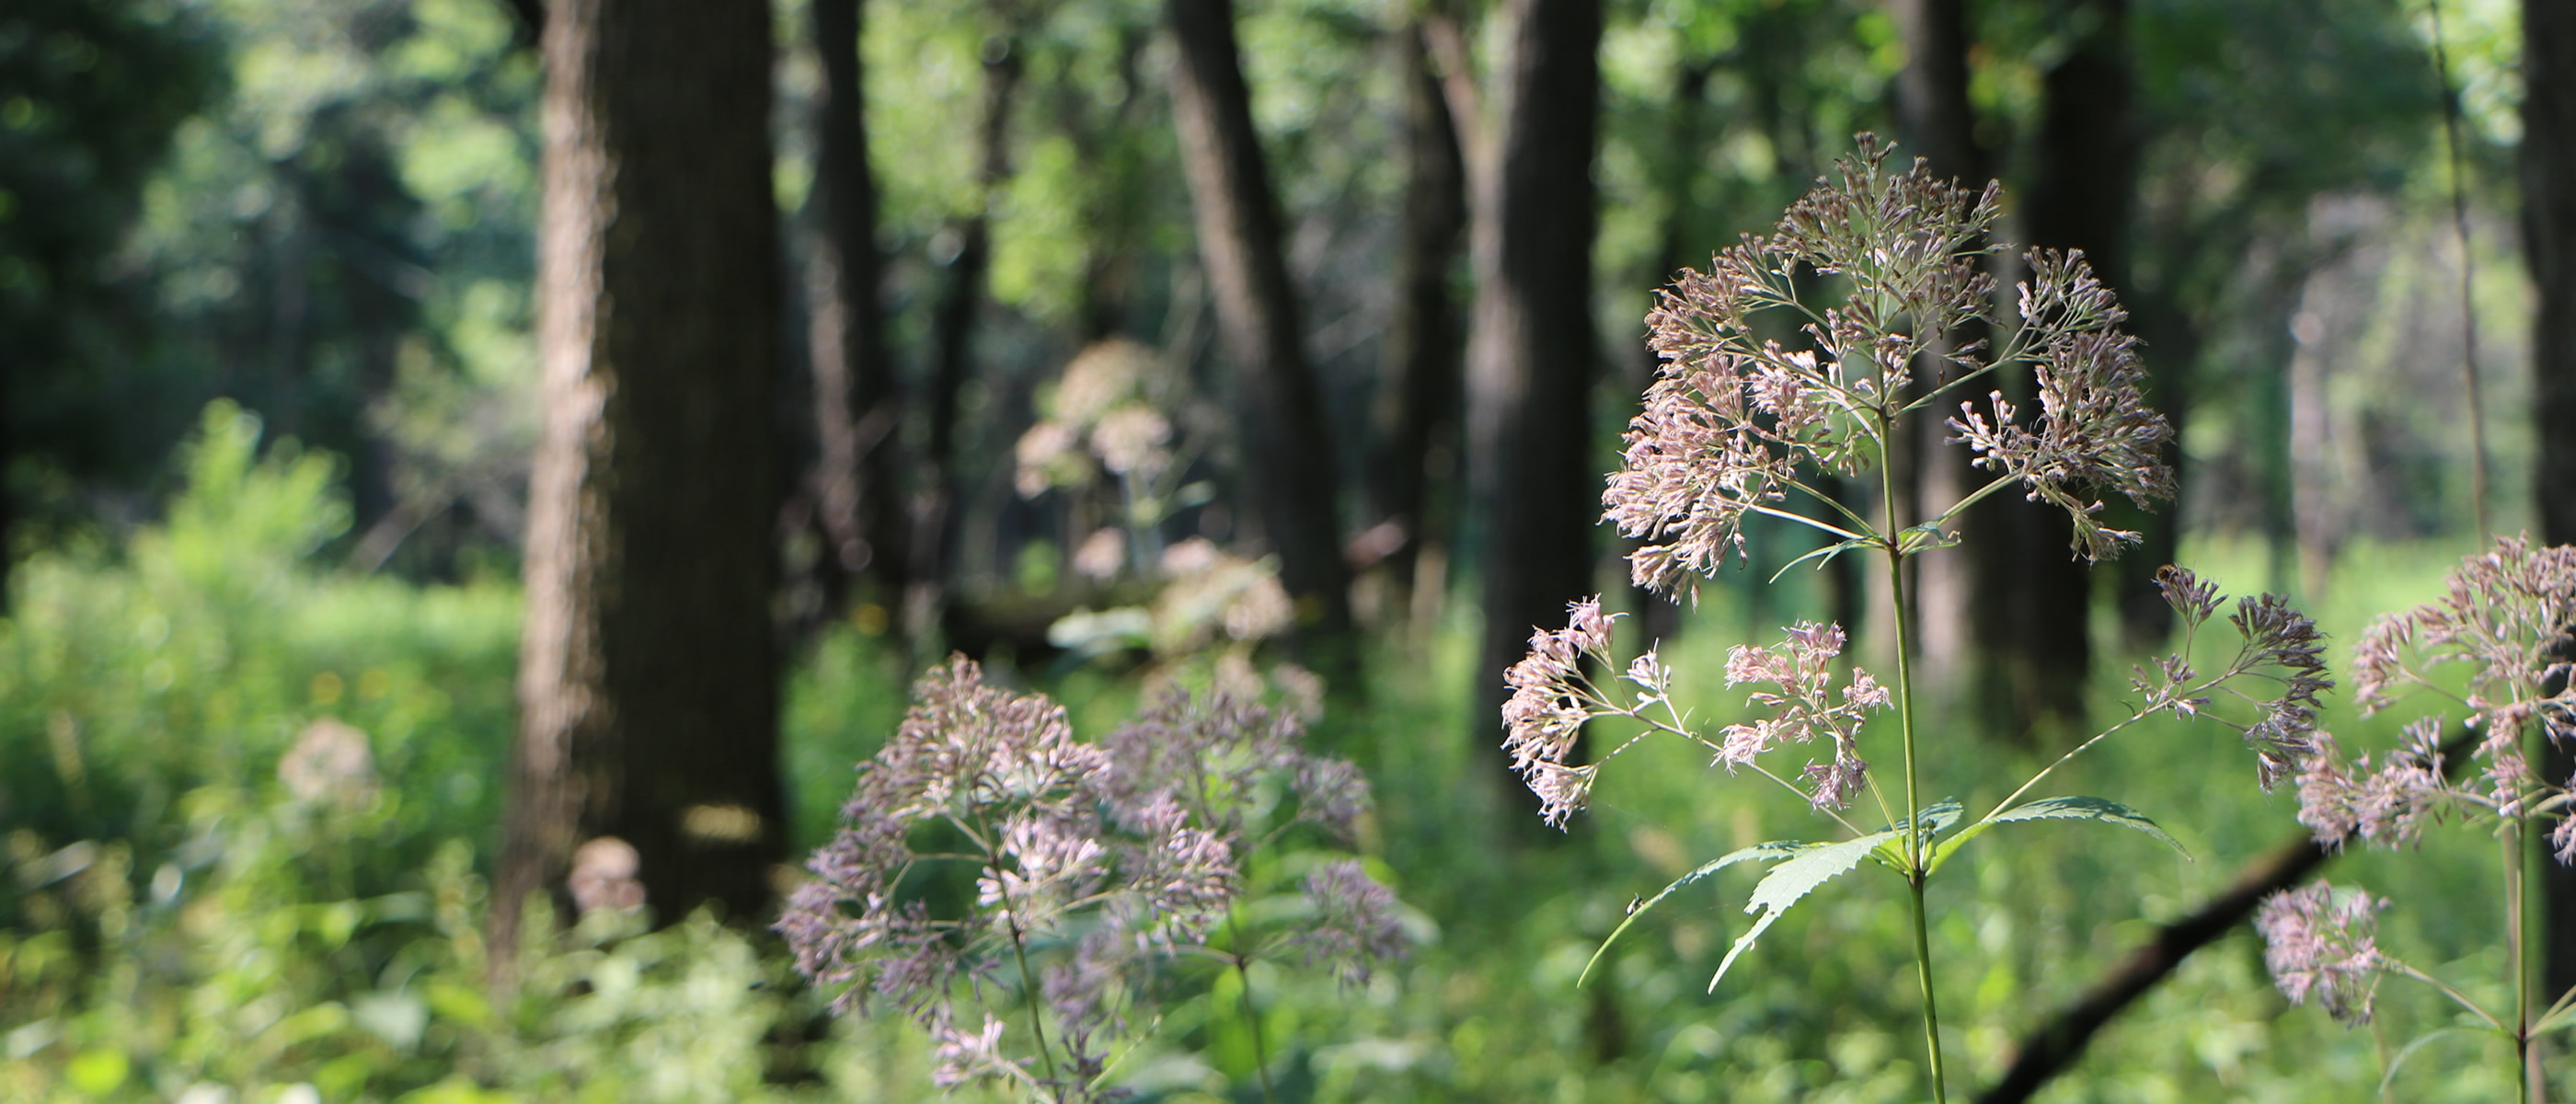 Joe pye weed in bloom at Cranberry Slough